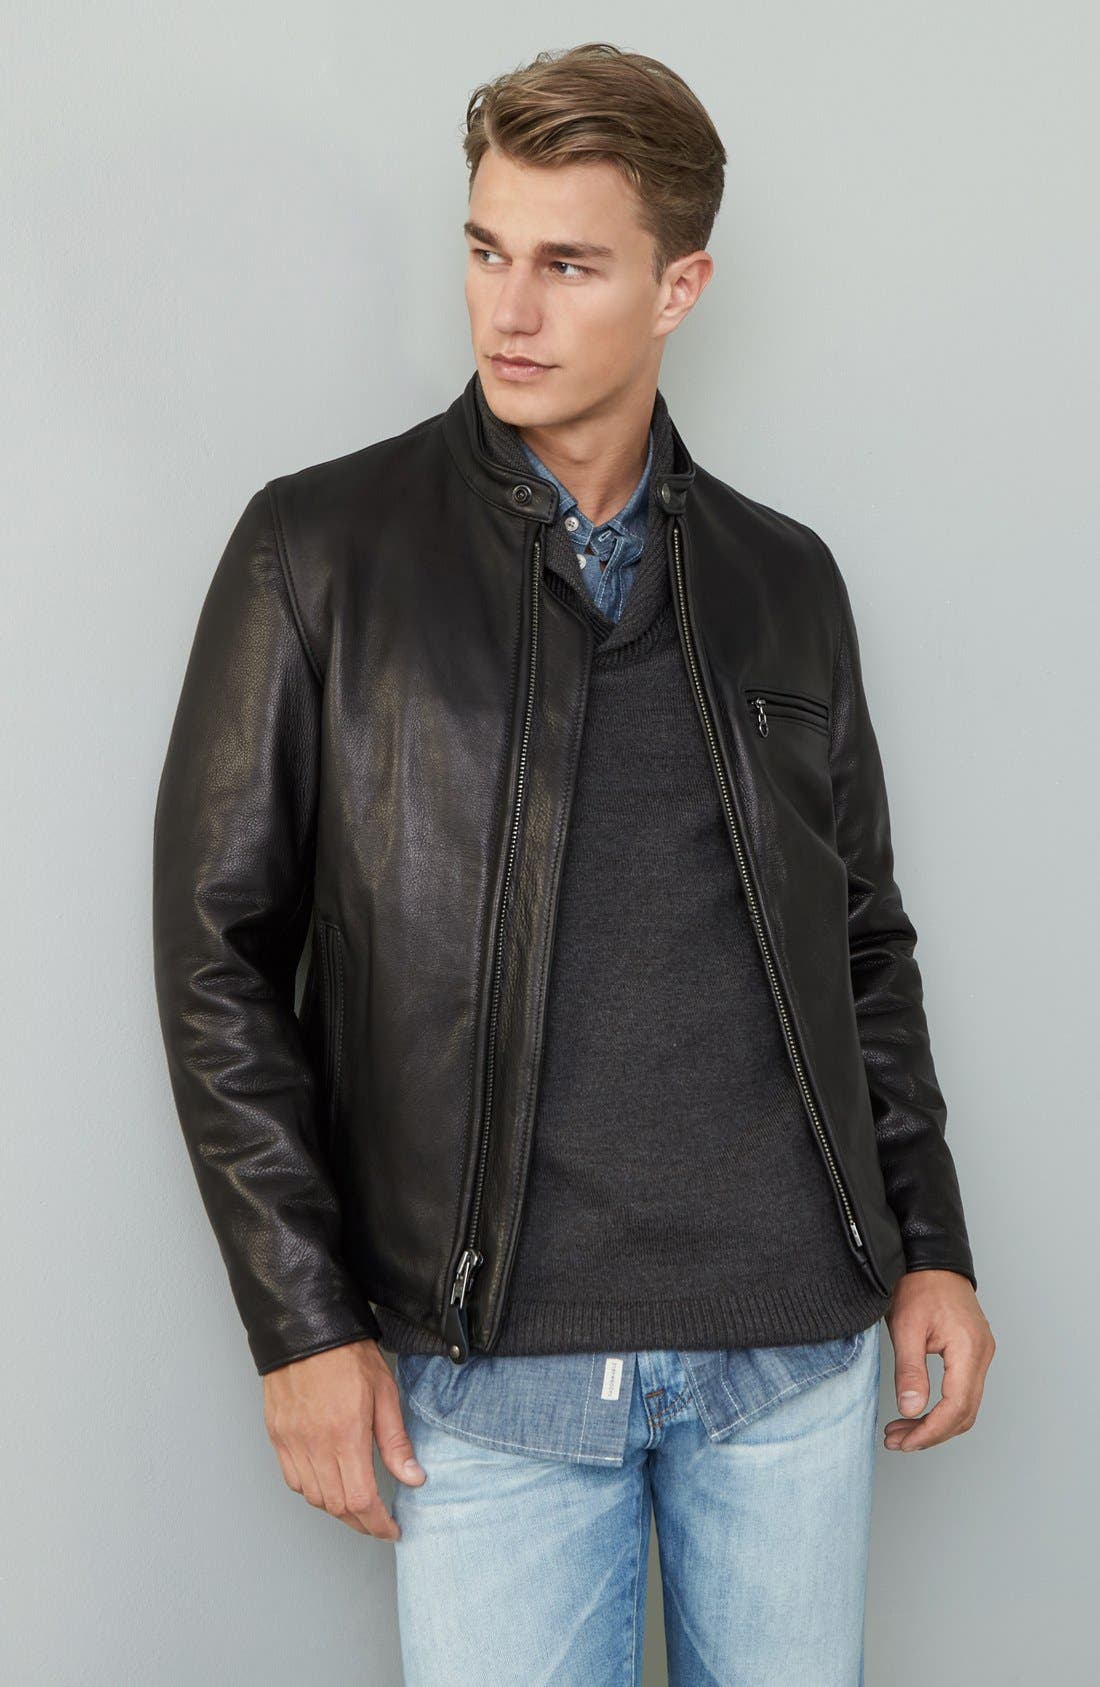 SCHOTT NYC, Café Racer Oil Tanned Cowhide Leather Moto Jacket, Alternate thumbnail 2, color, BLACK